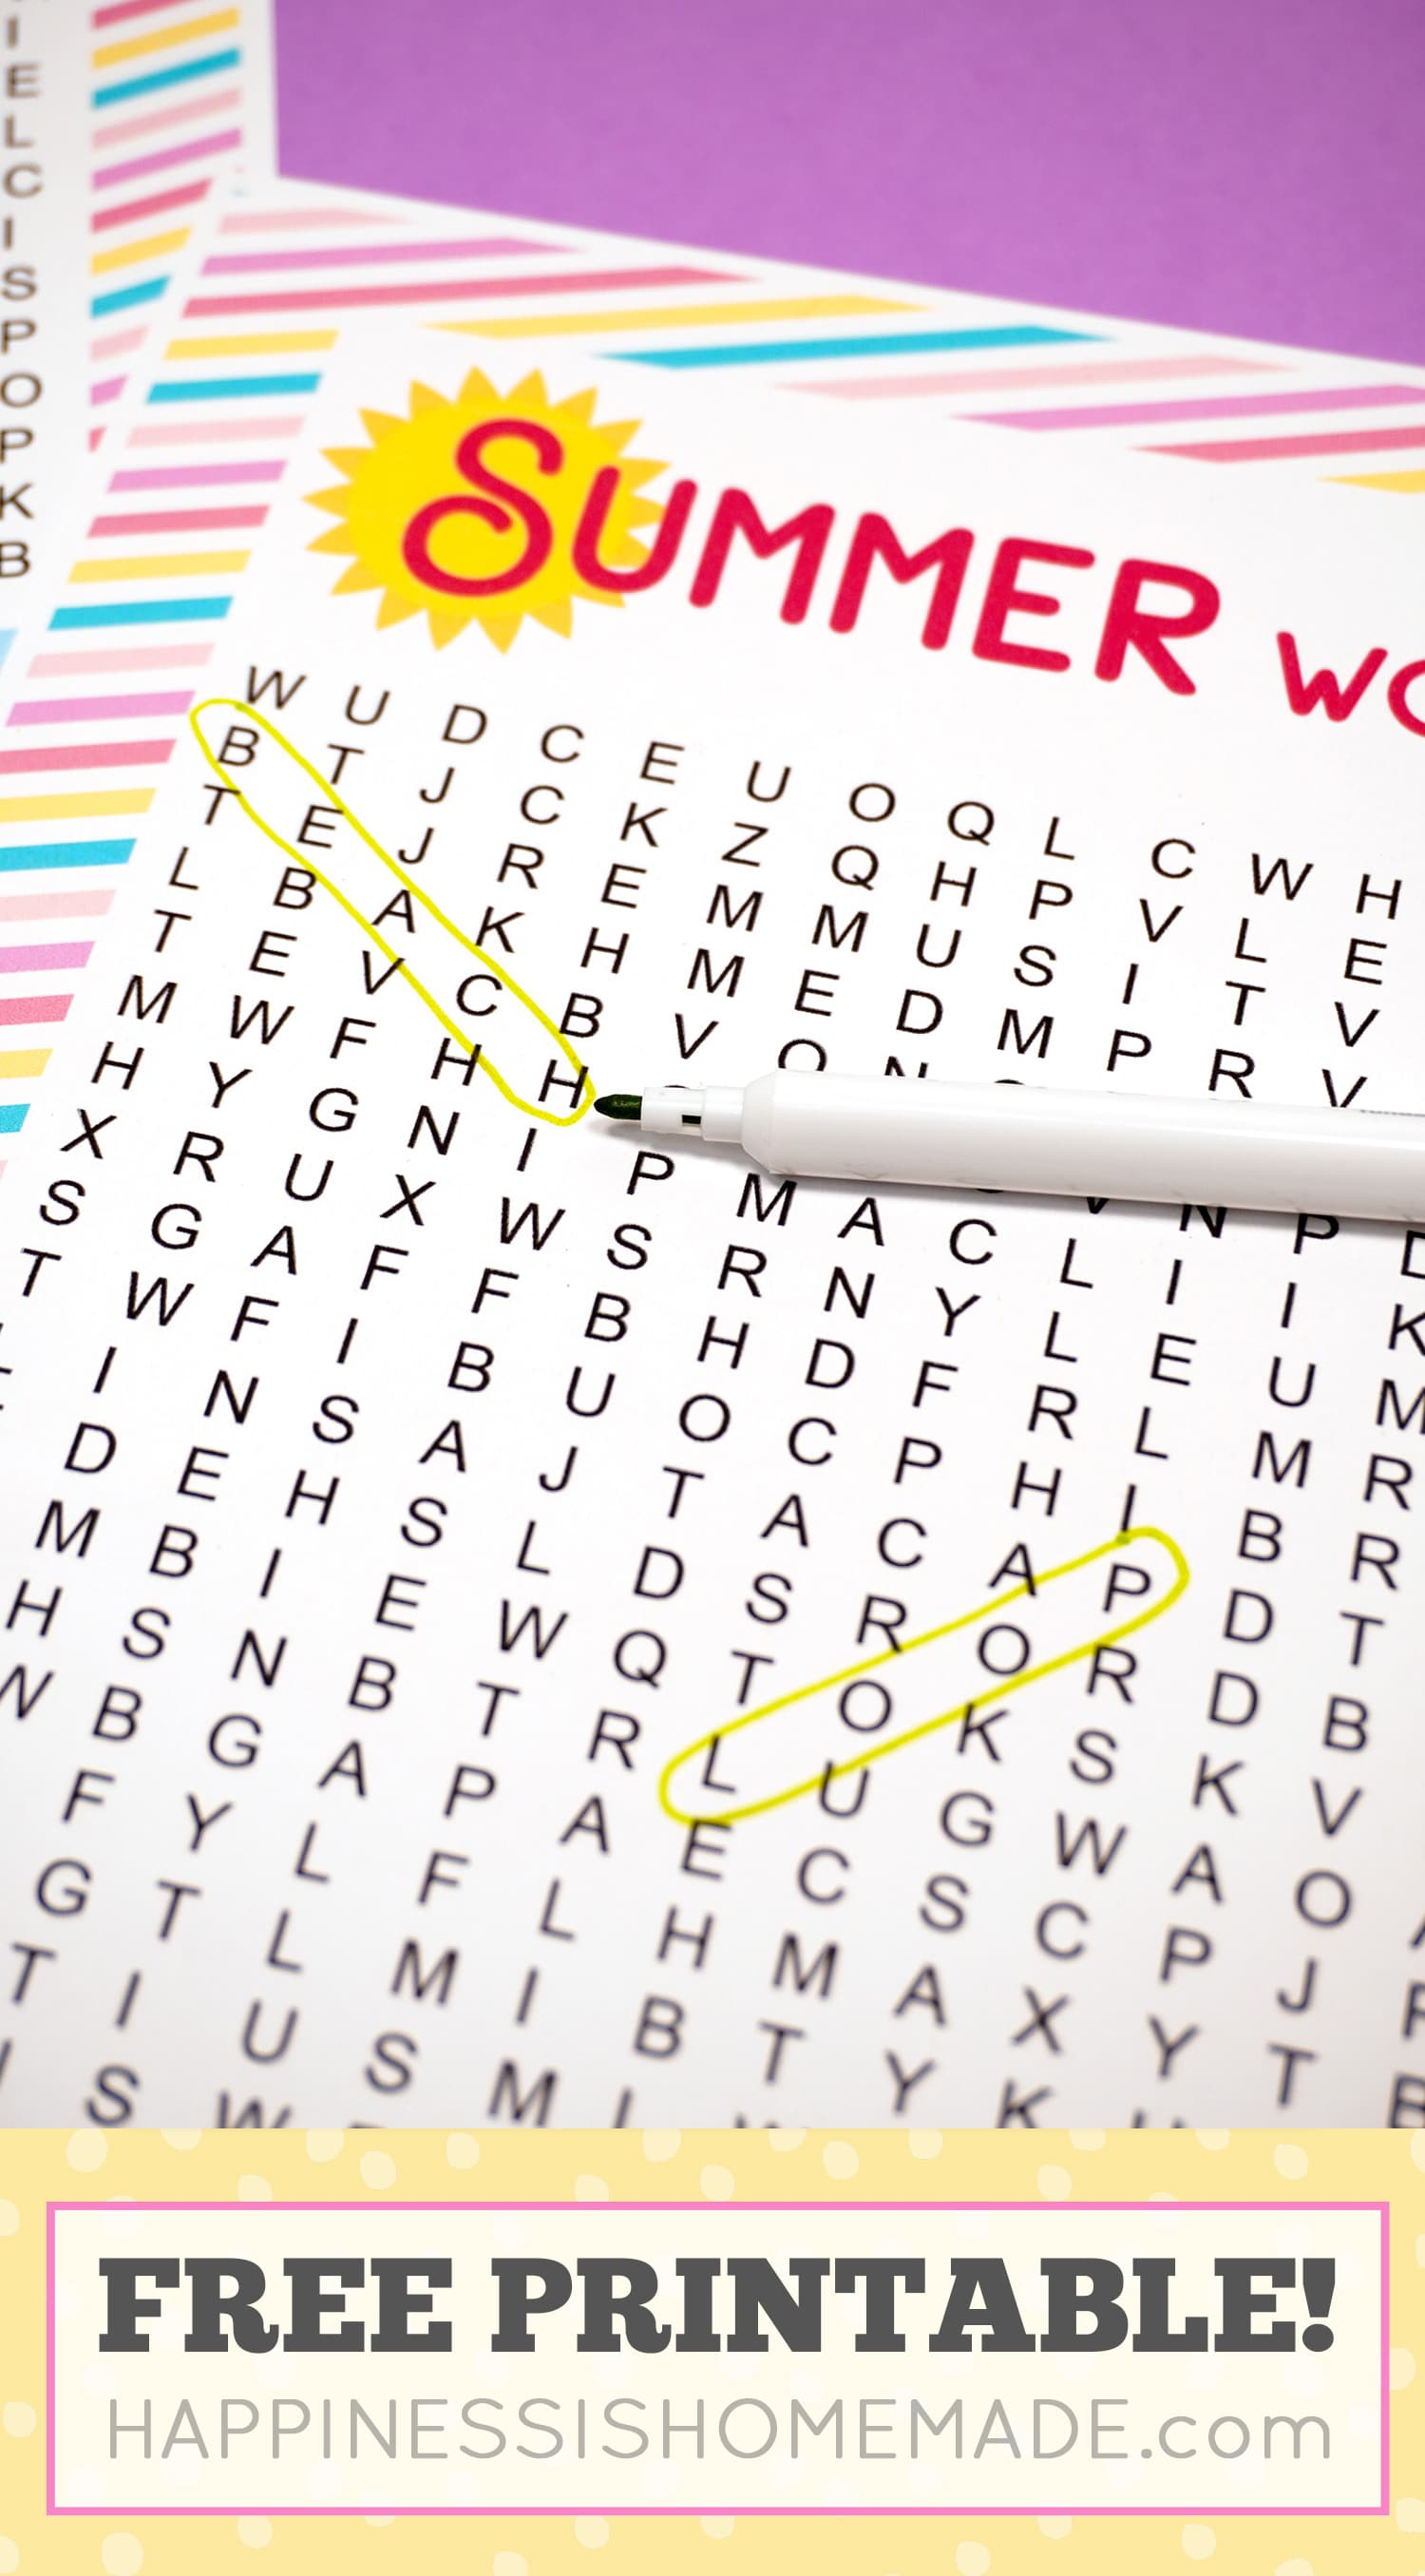 "Summer word search with the words ""beach\"" and \""loop\"" circled in yellow."